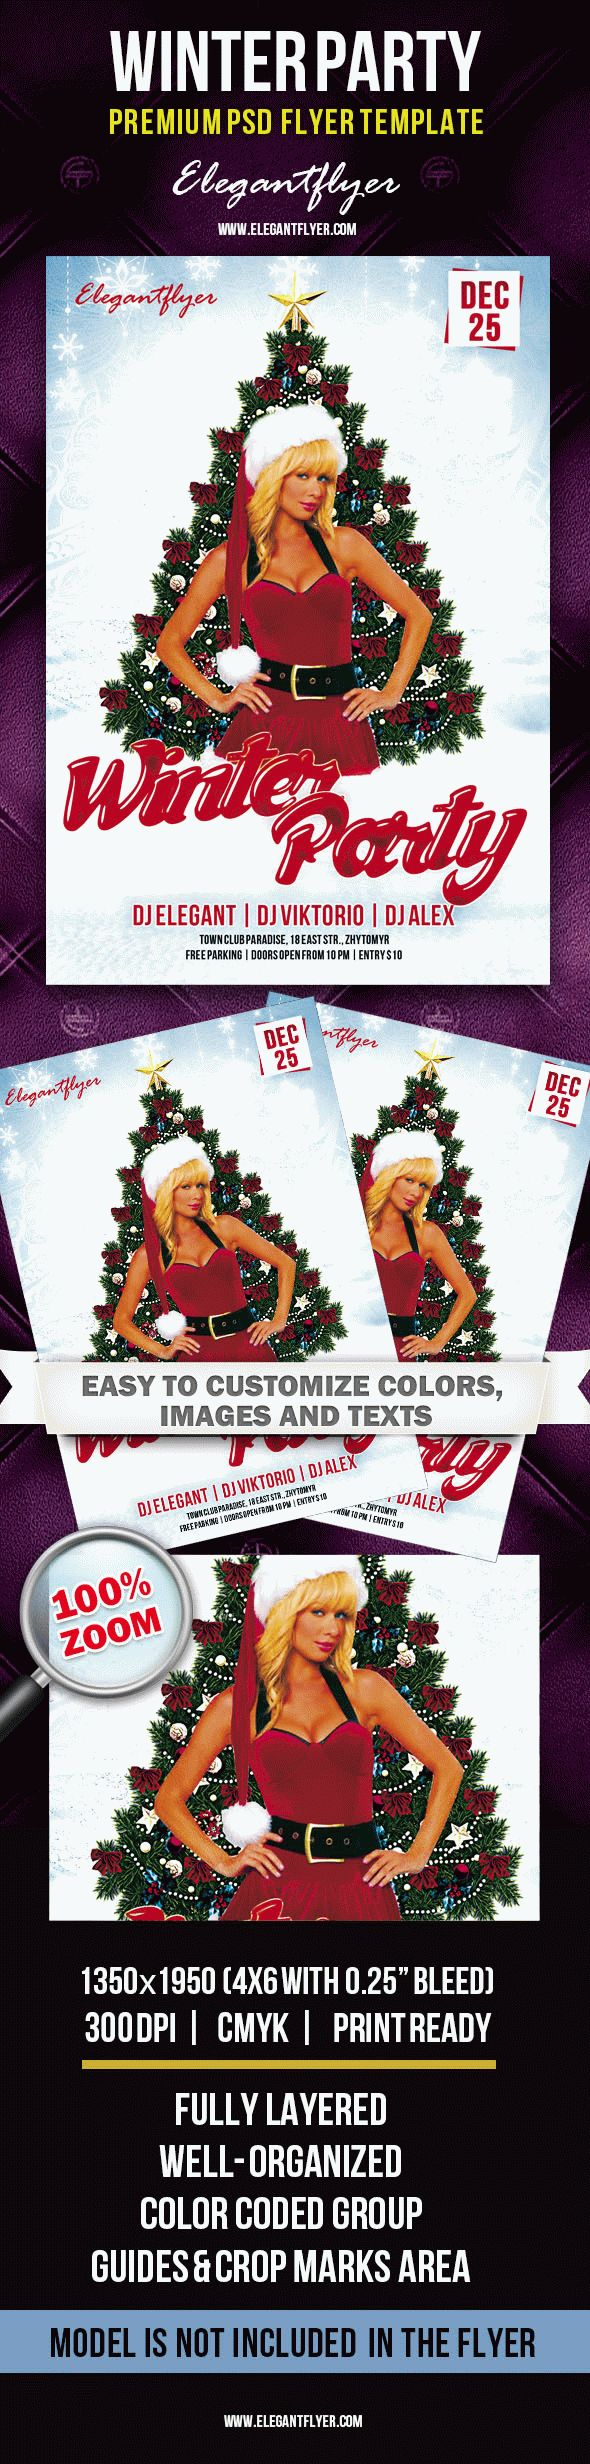 Winter Party – Premium Club flyer PSD Template